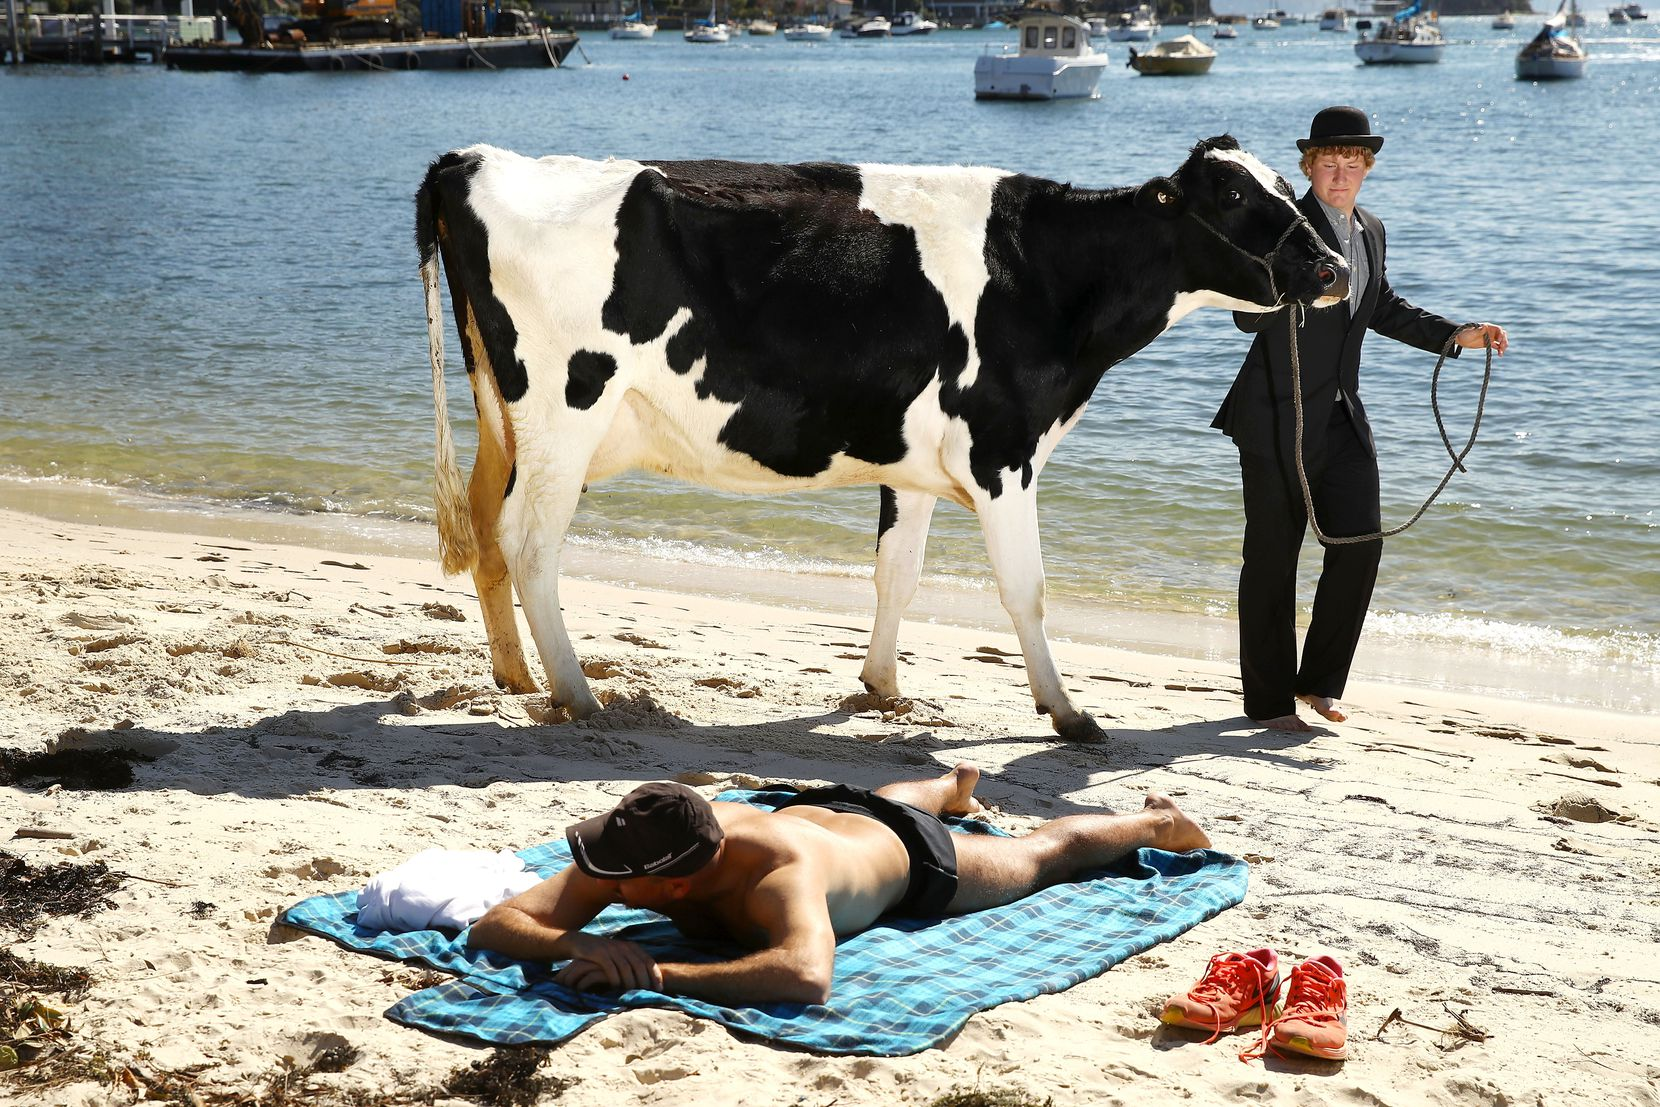 Clint Irrthum walks a cow past a sunbather on the sand as part an Andrew Baines art installation on Double Bay Beach on Tuesday, Aug. 14 in Sydney, Australia. Surrealist artist Andrew Baines orchestrated the spectacle to give the cows a day of rest and relaxation, and break from the mundane and monotonous regime of milking in Sydney's affluent eastern suburb of Double Bay.